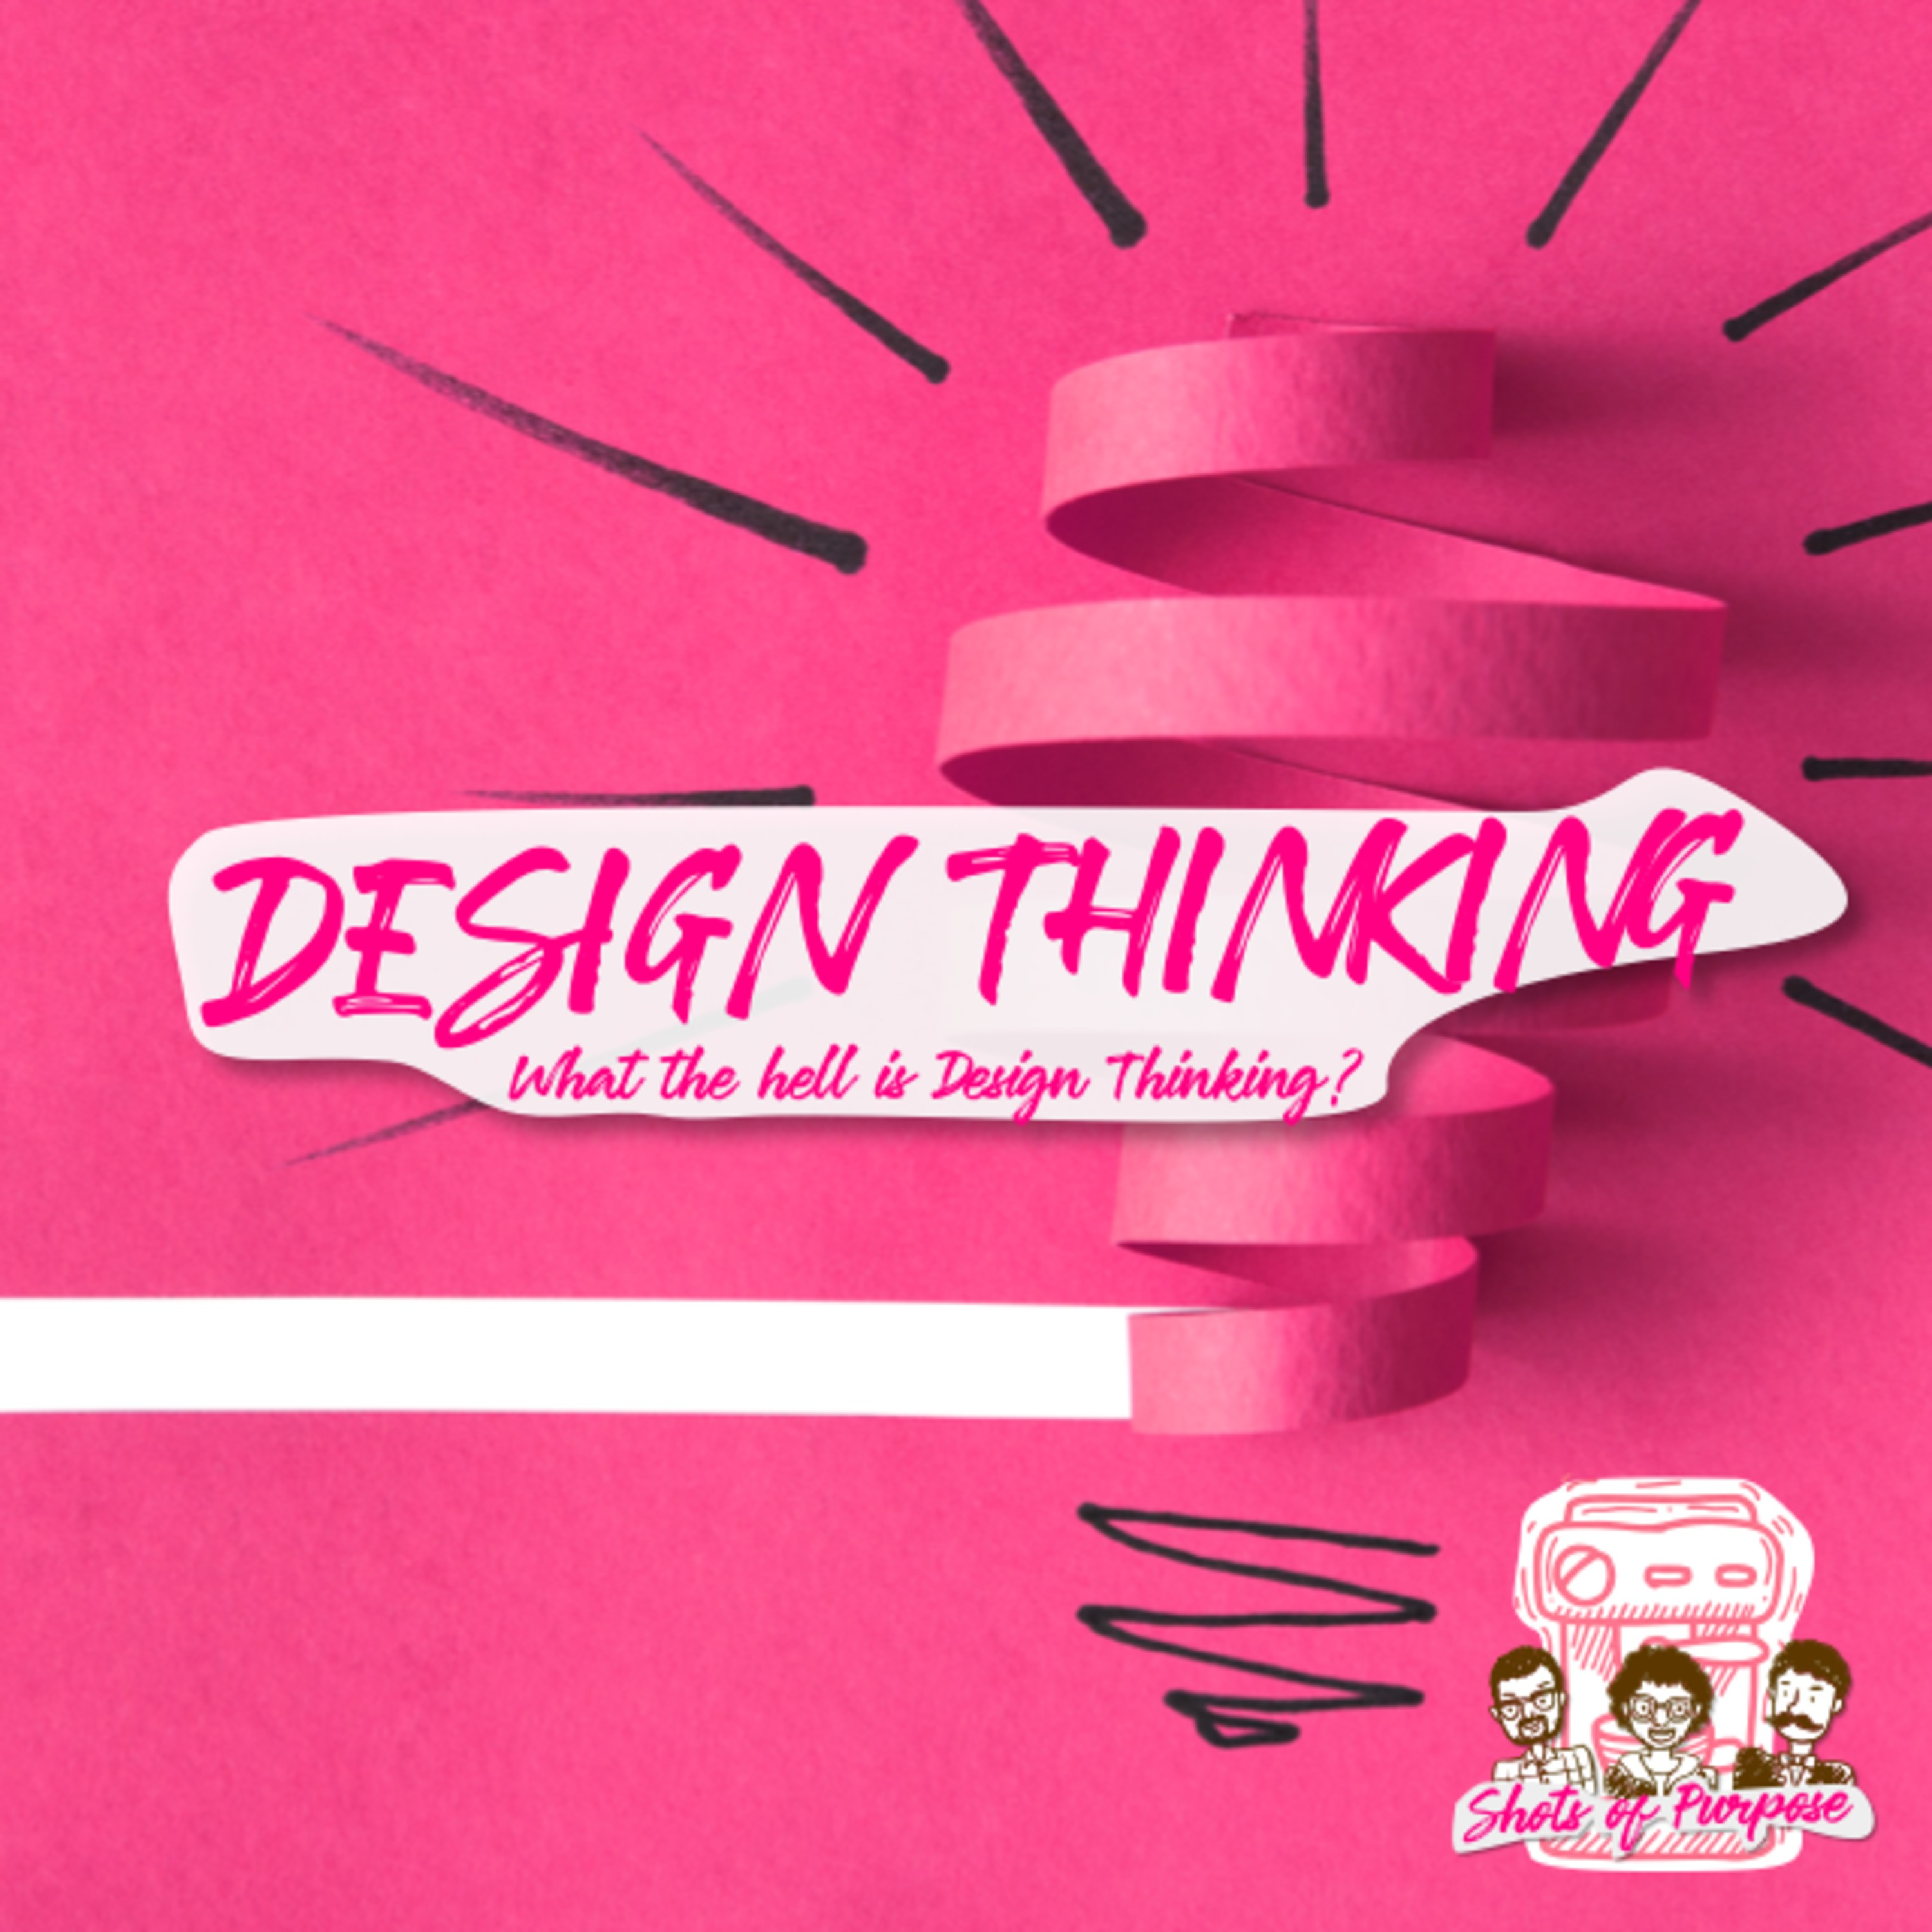 Design Thinking, is it a system? a handbook? a toolbox?